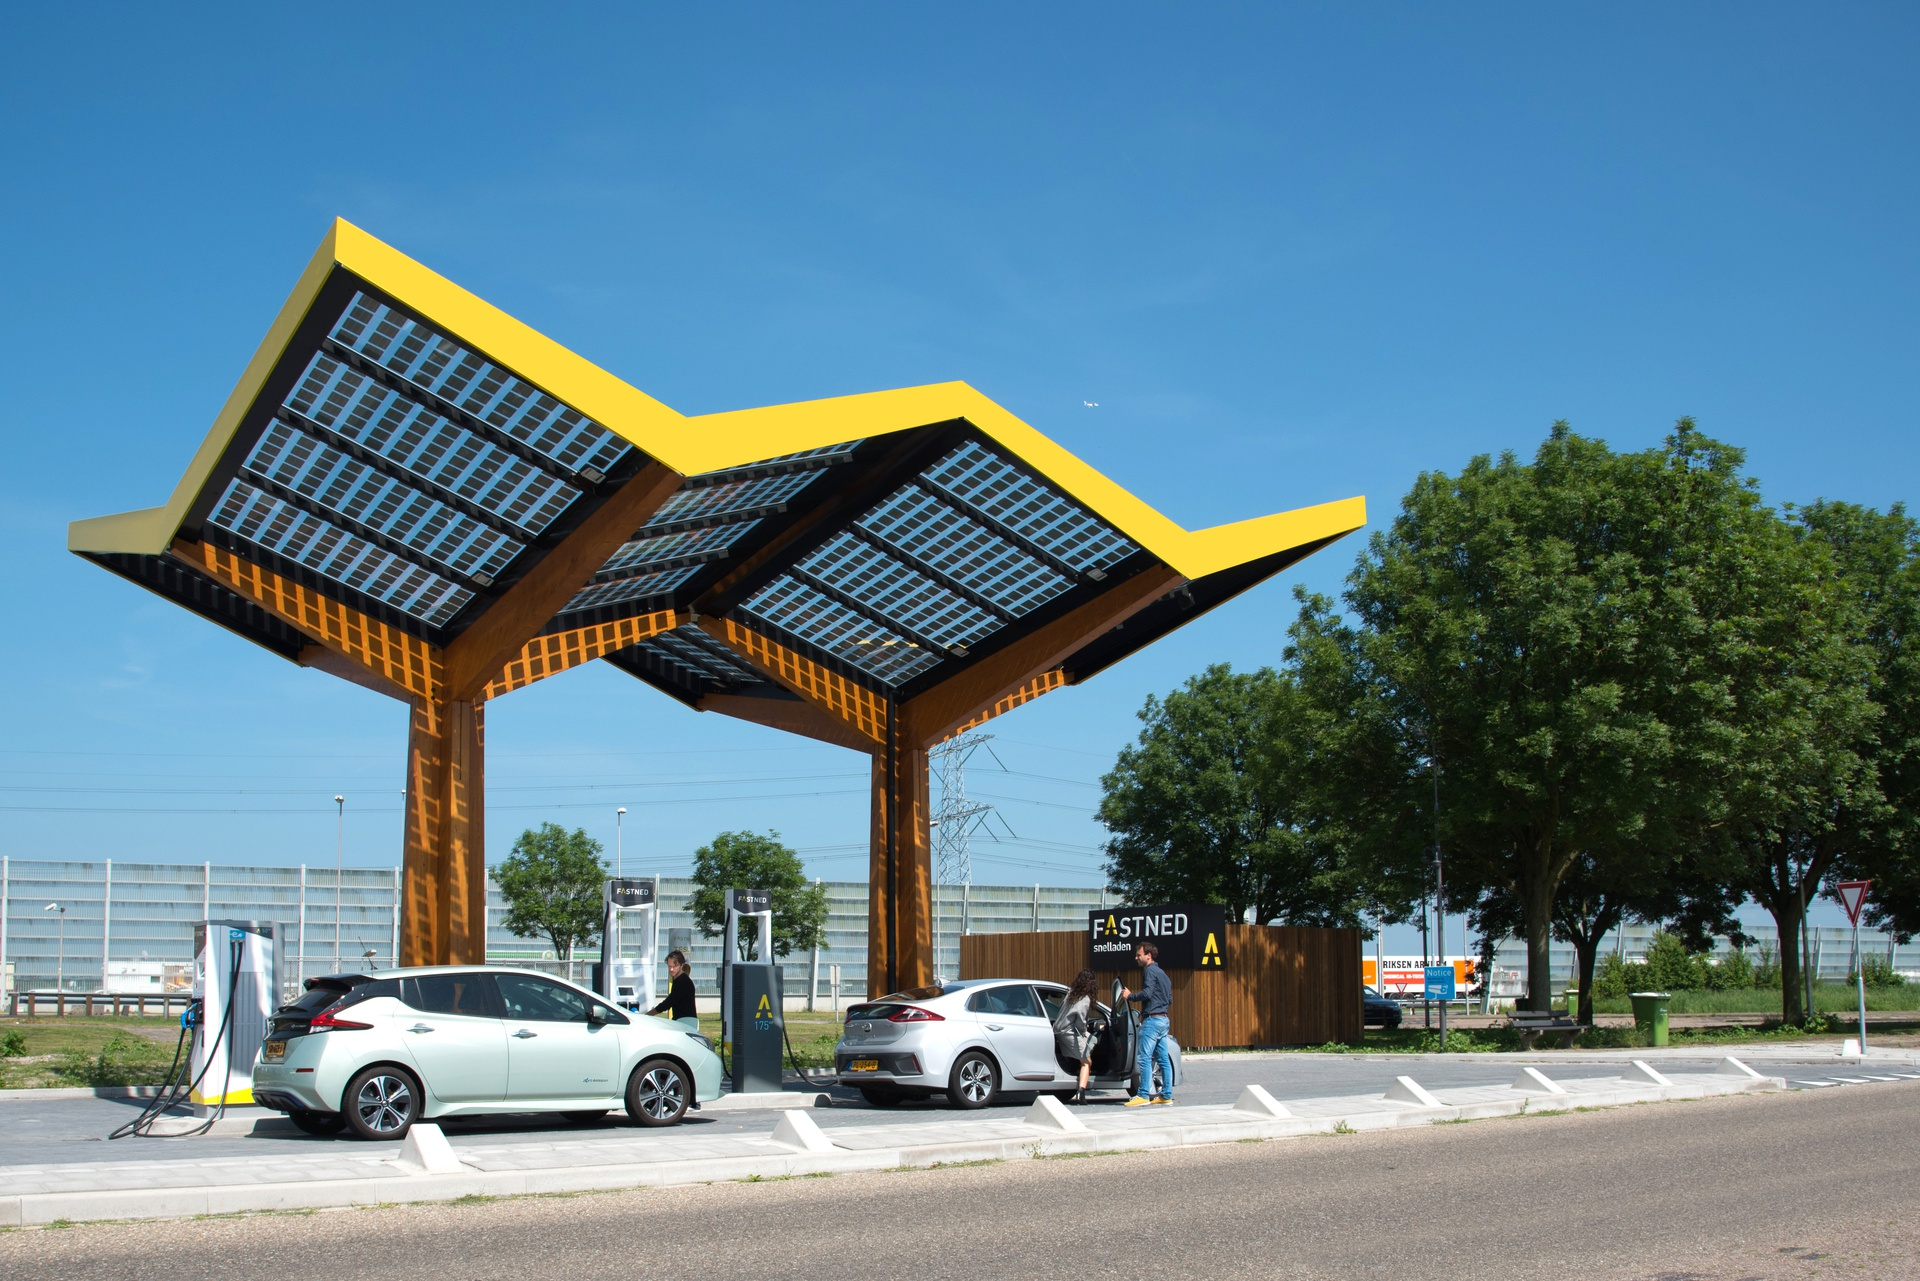 Fastned_fast charging stations_De Watering_NL.jpg